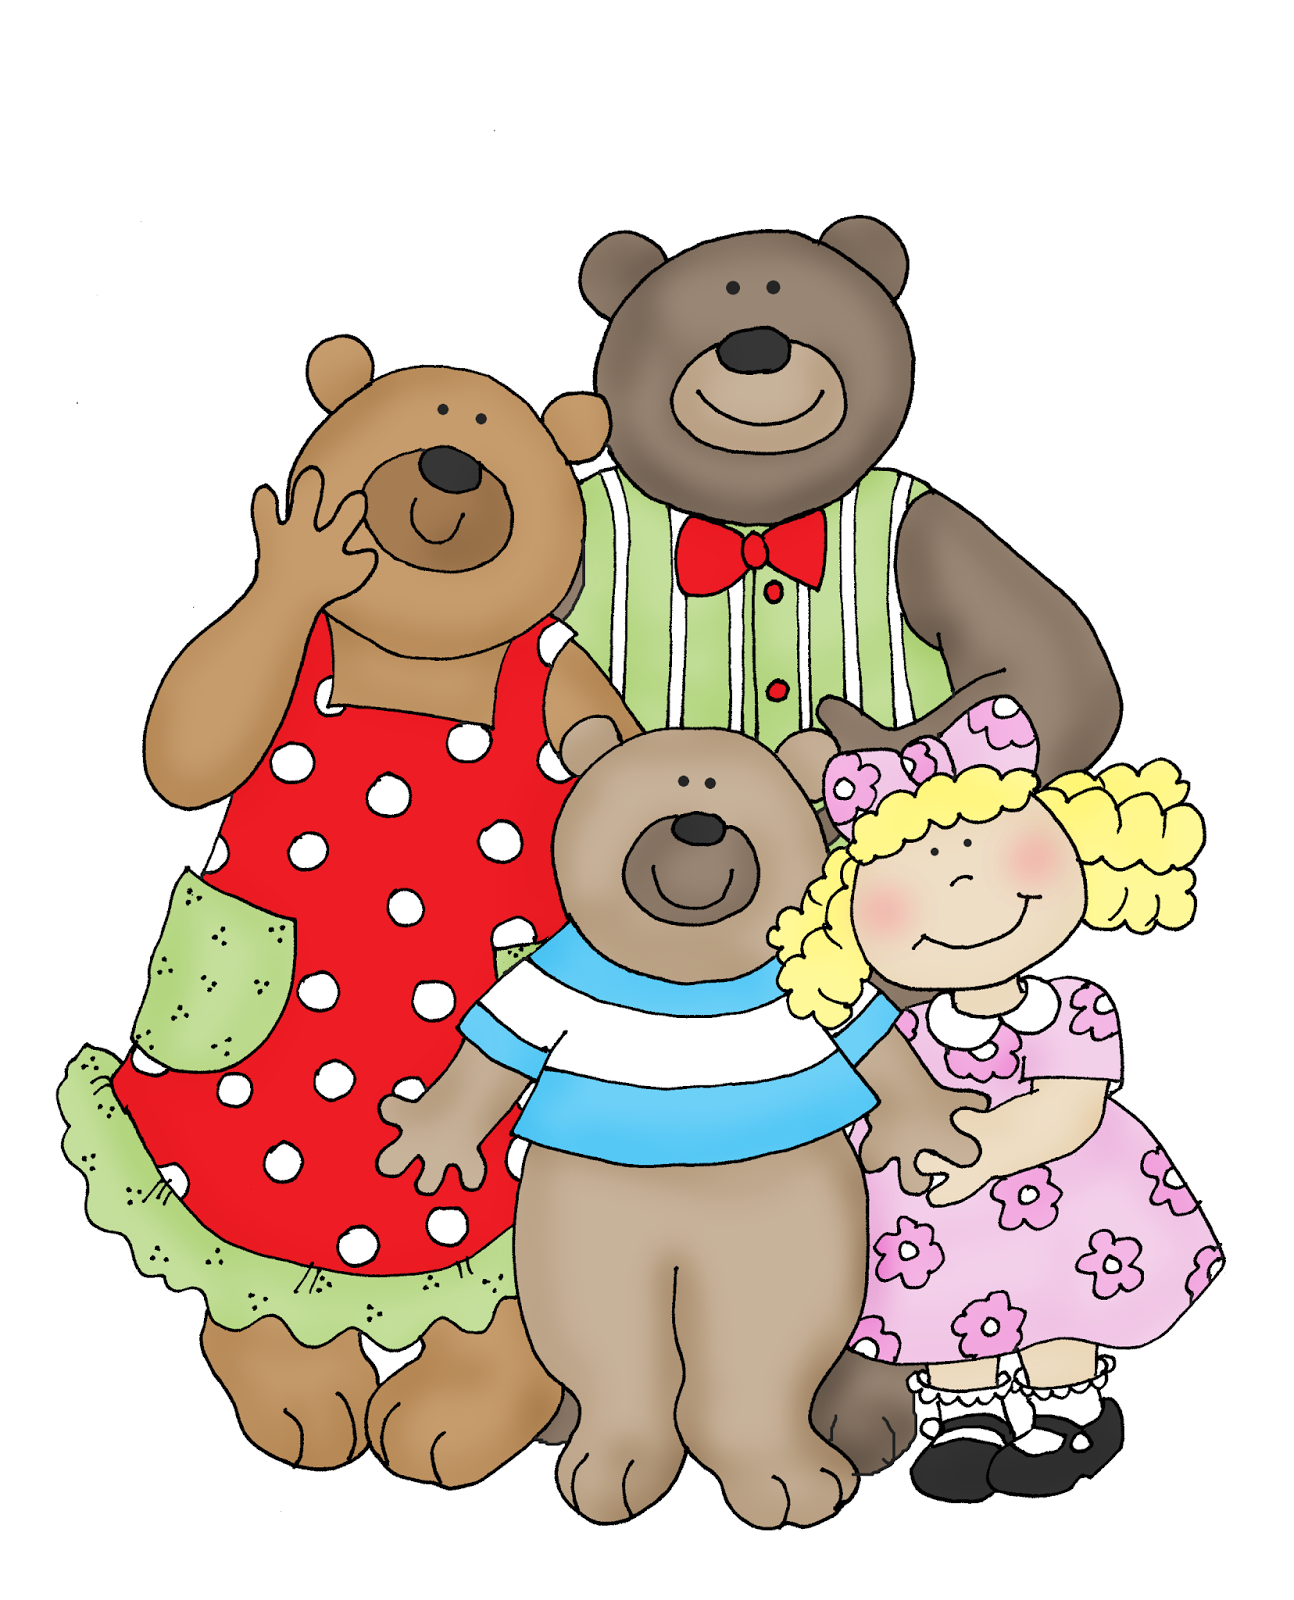 goldilocks and the three bears clipart at getdrawings com free for rh getdrawings com Three Bears Clip Art goldilocks and the three bears clipart black and white